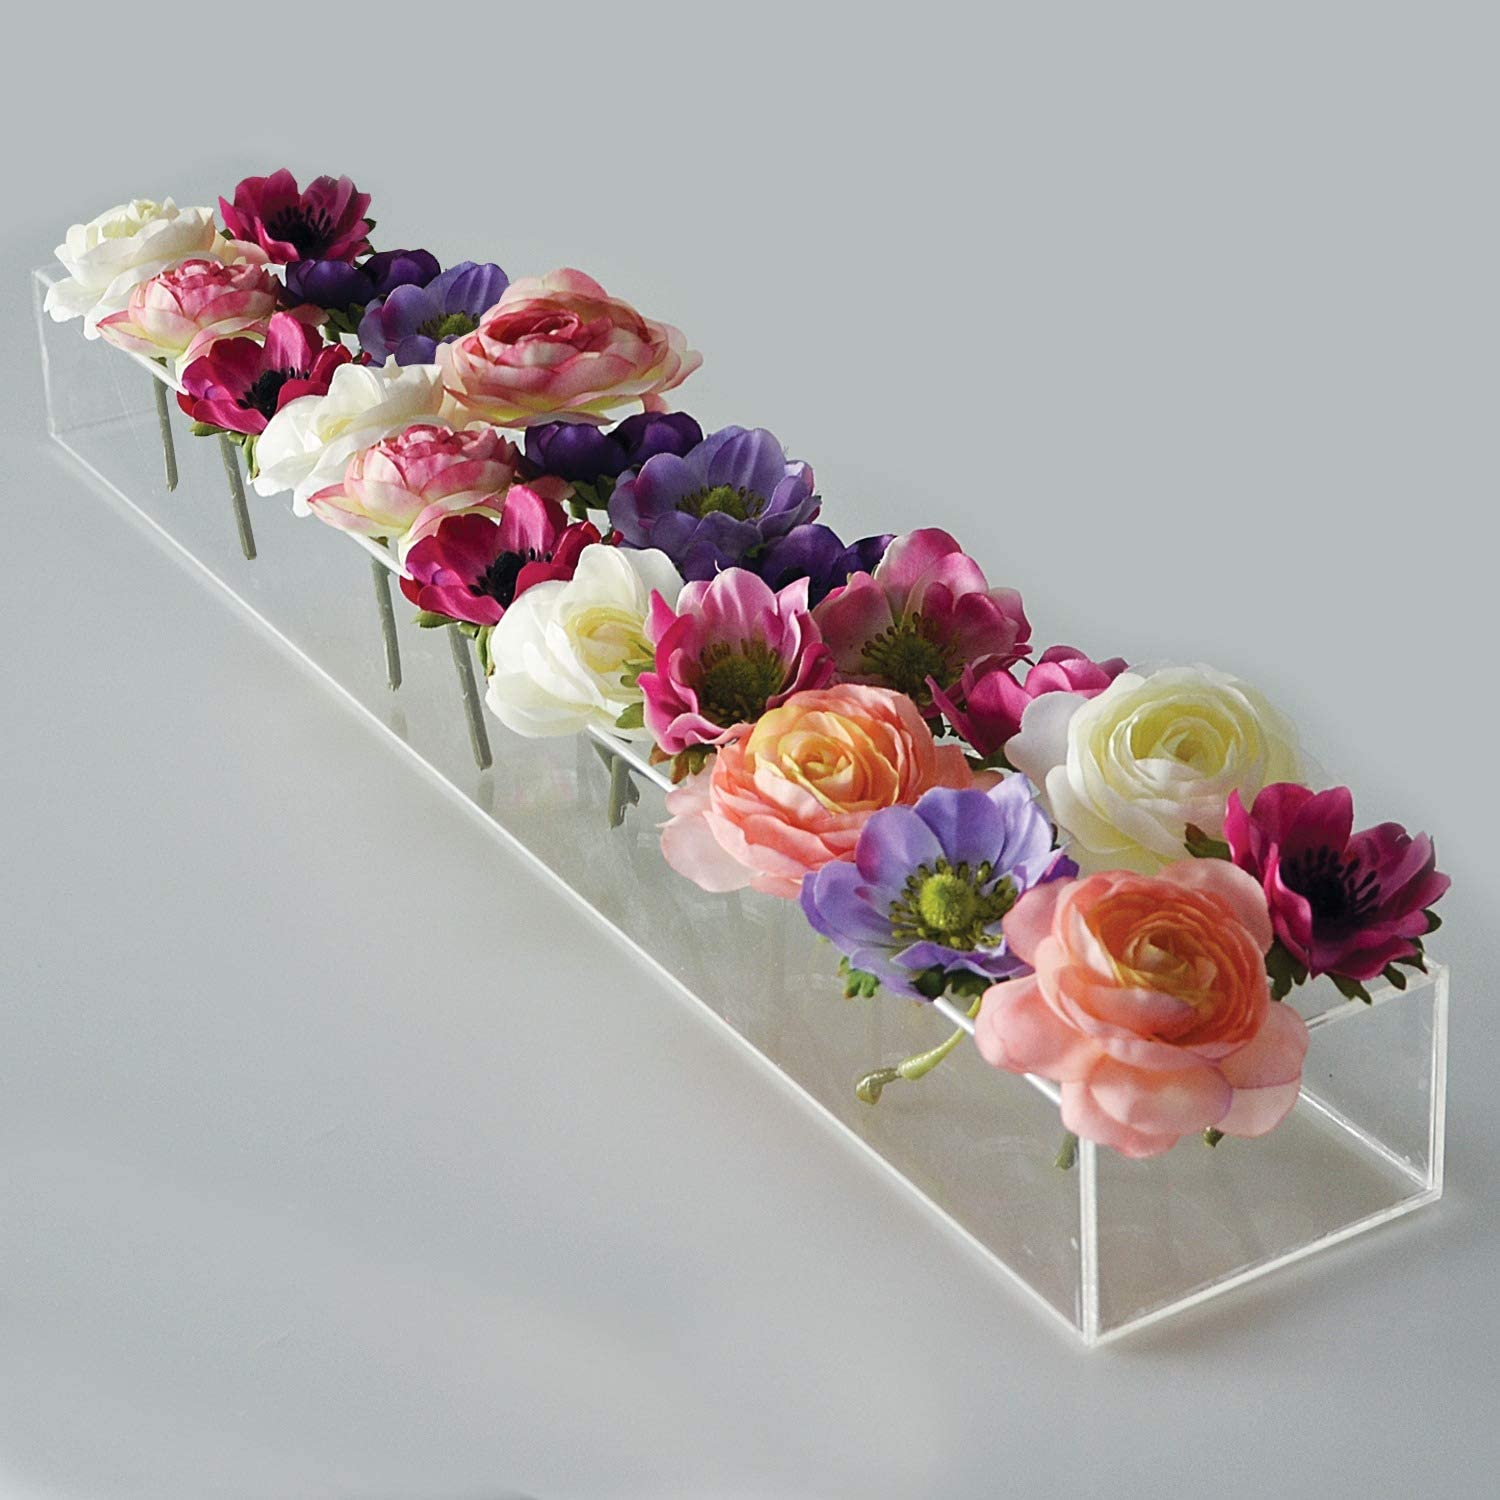 Rectangular Floral Centerpiece For Dining Table 24 Inches Long Rectangular Vase Acrylic Modern Vase Flower Vases Centerpiece Low Floral Vases For Centerpieces For Home Decor Weddings Clear Kitchen Dining